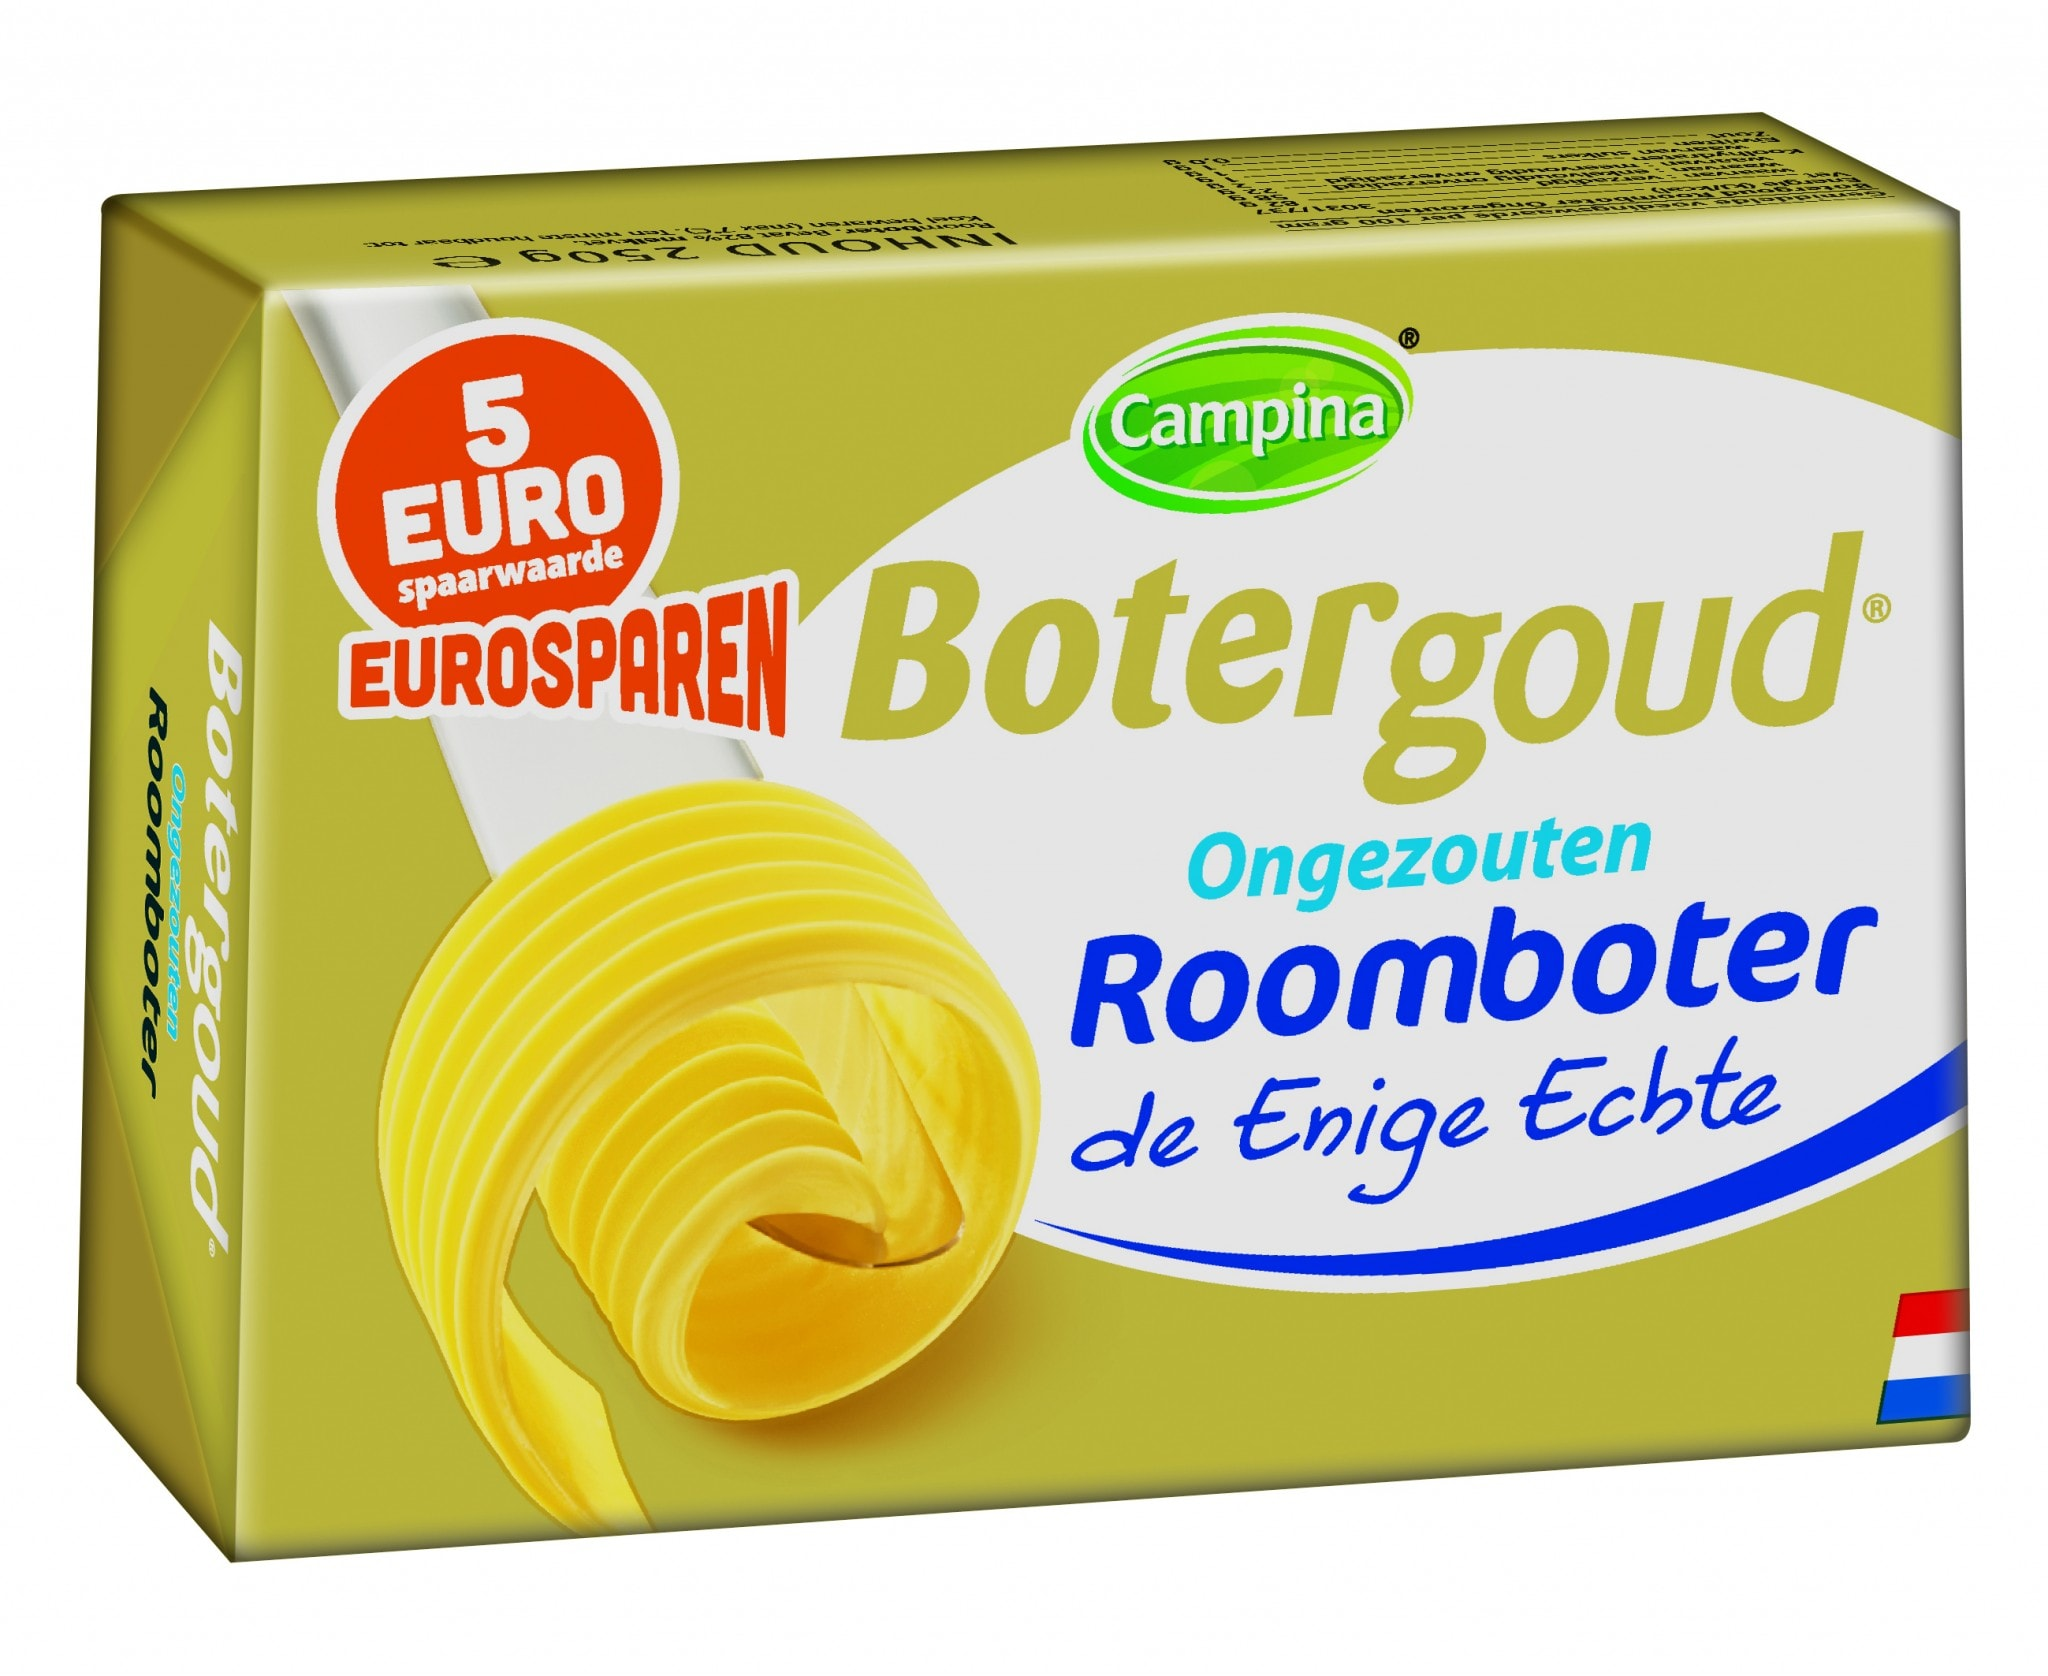 roomboter zonder lactose